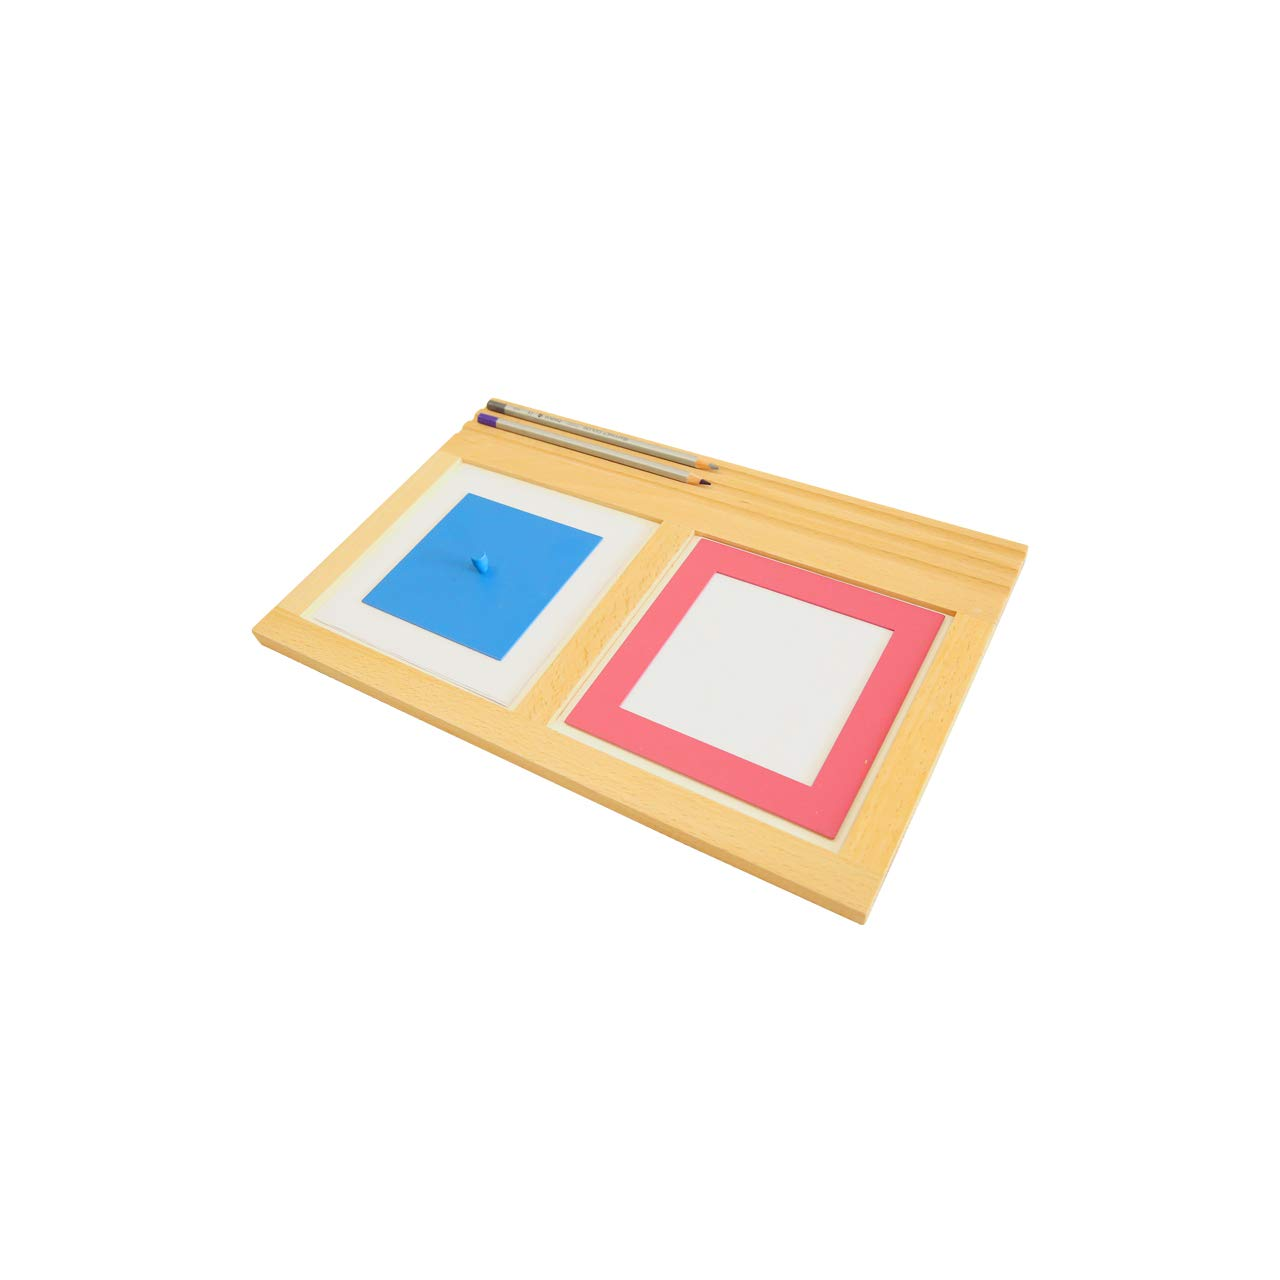 MONTESSORI OUTLET Metal Insets Tracing Tray by MONTESSORI OUTLET